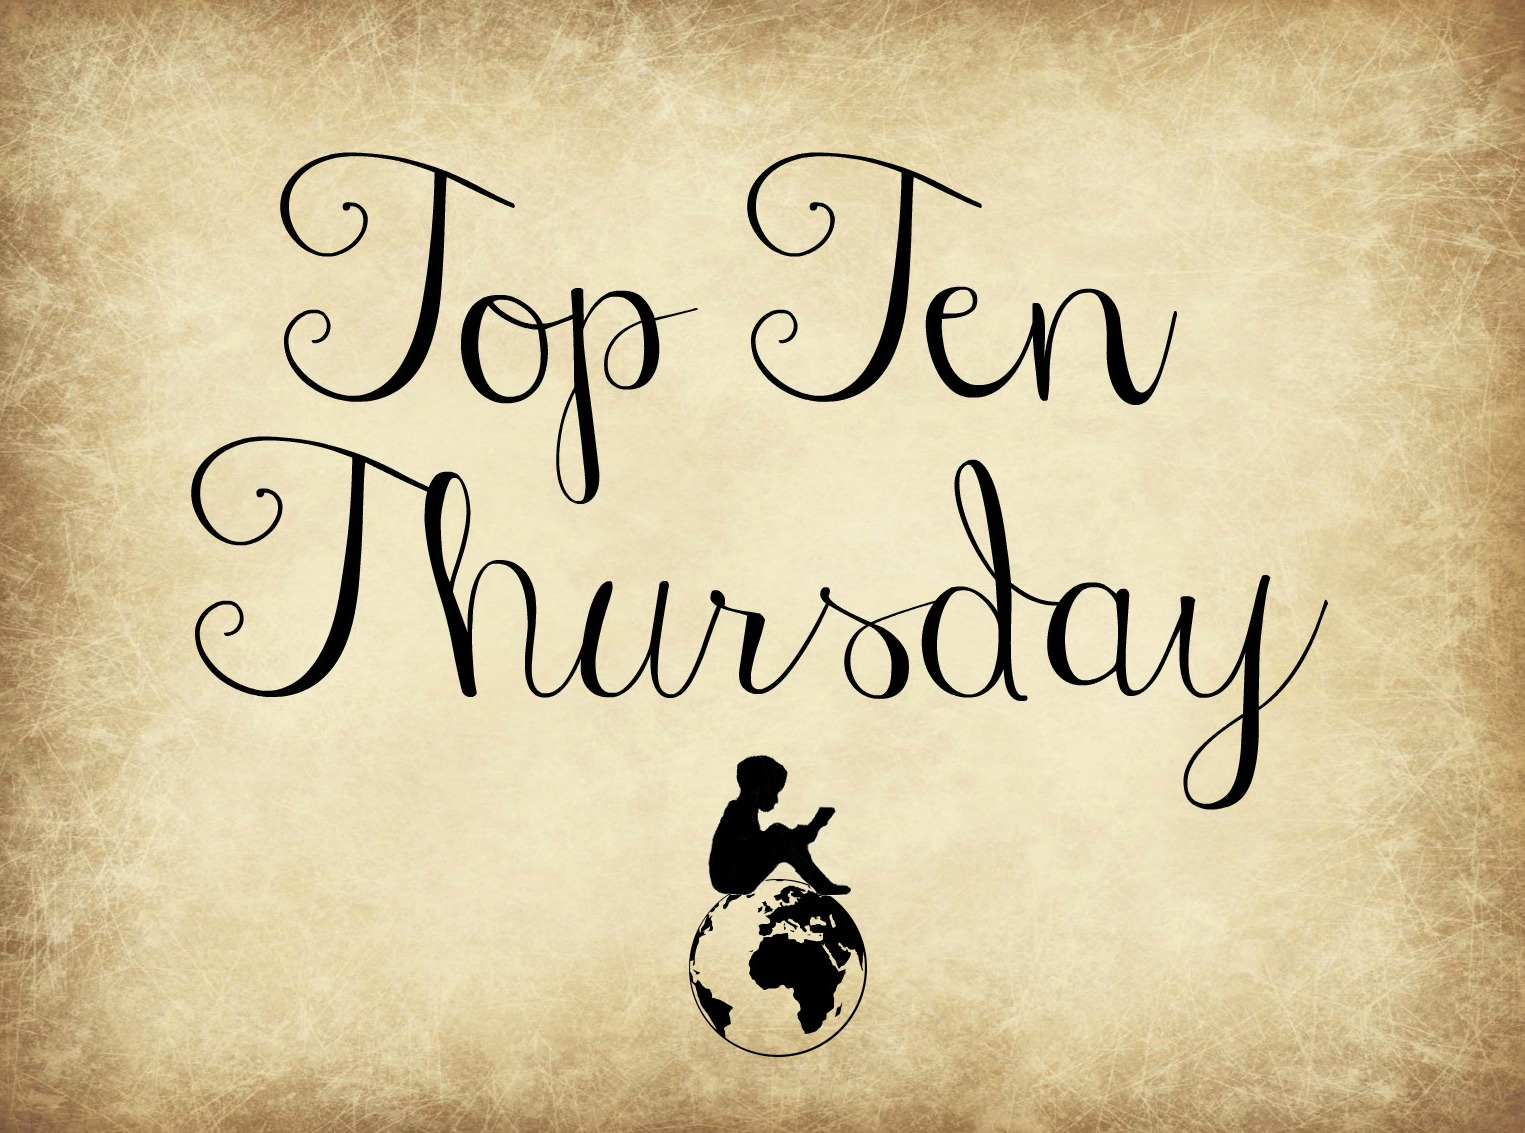 Top Ten Thursday – 10 Bücher im Winter oder hohen Norden